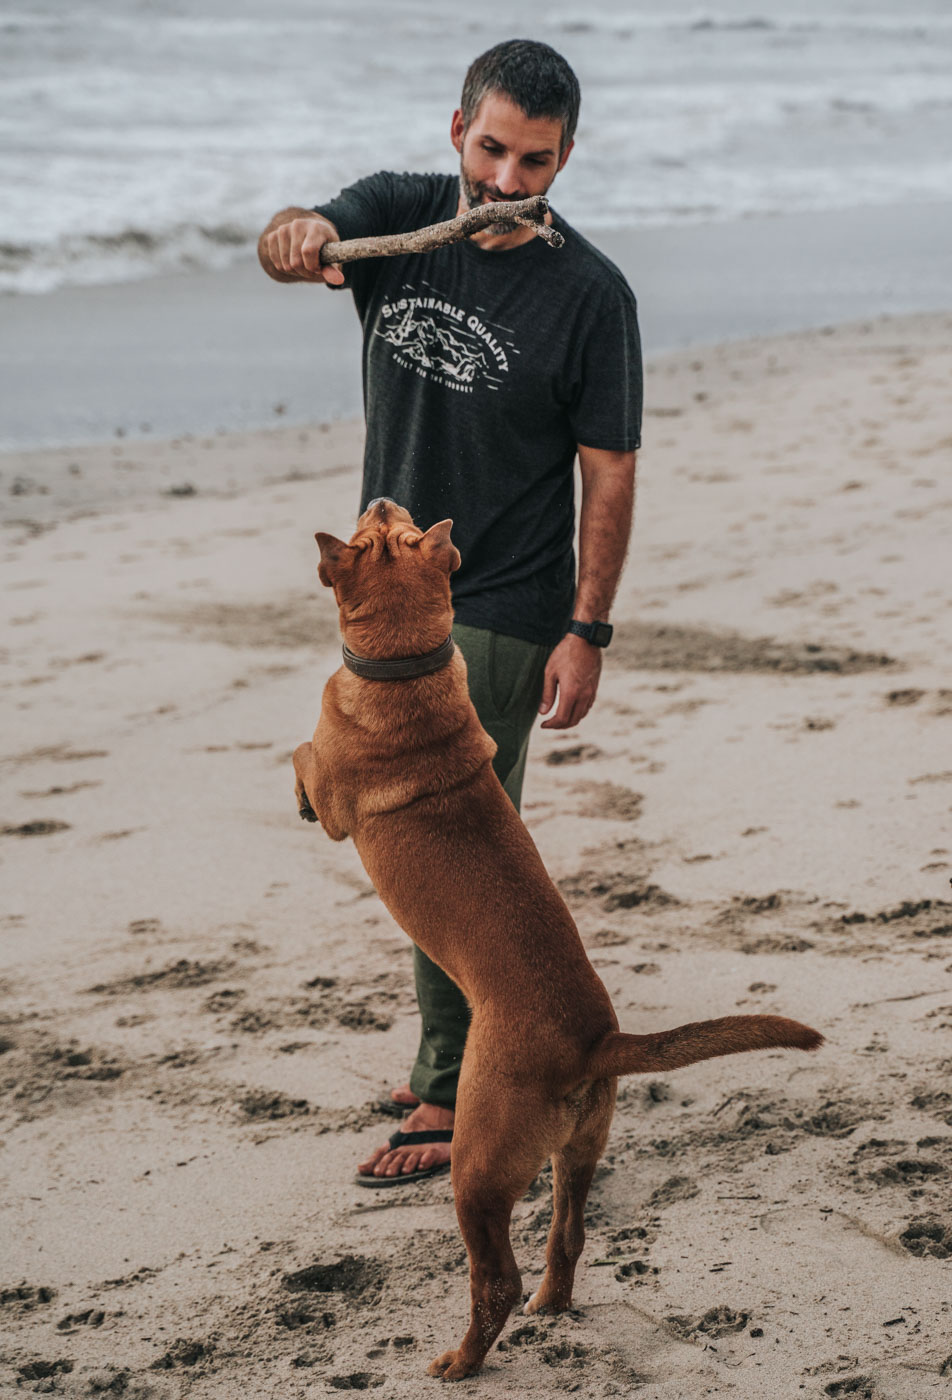 Max wearing Prana, as a clothing company great for an eco friendly guide